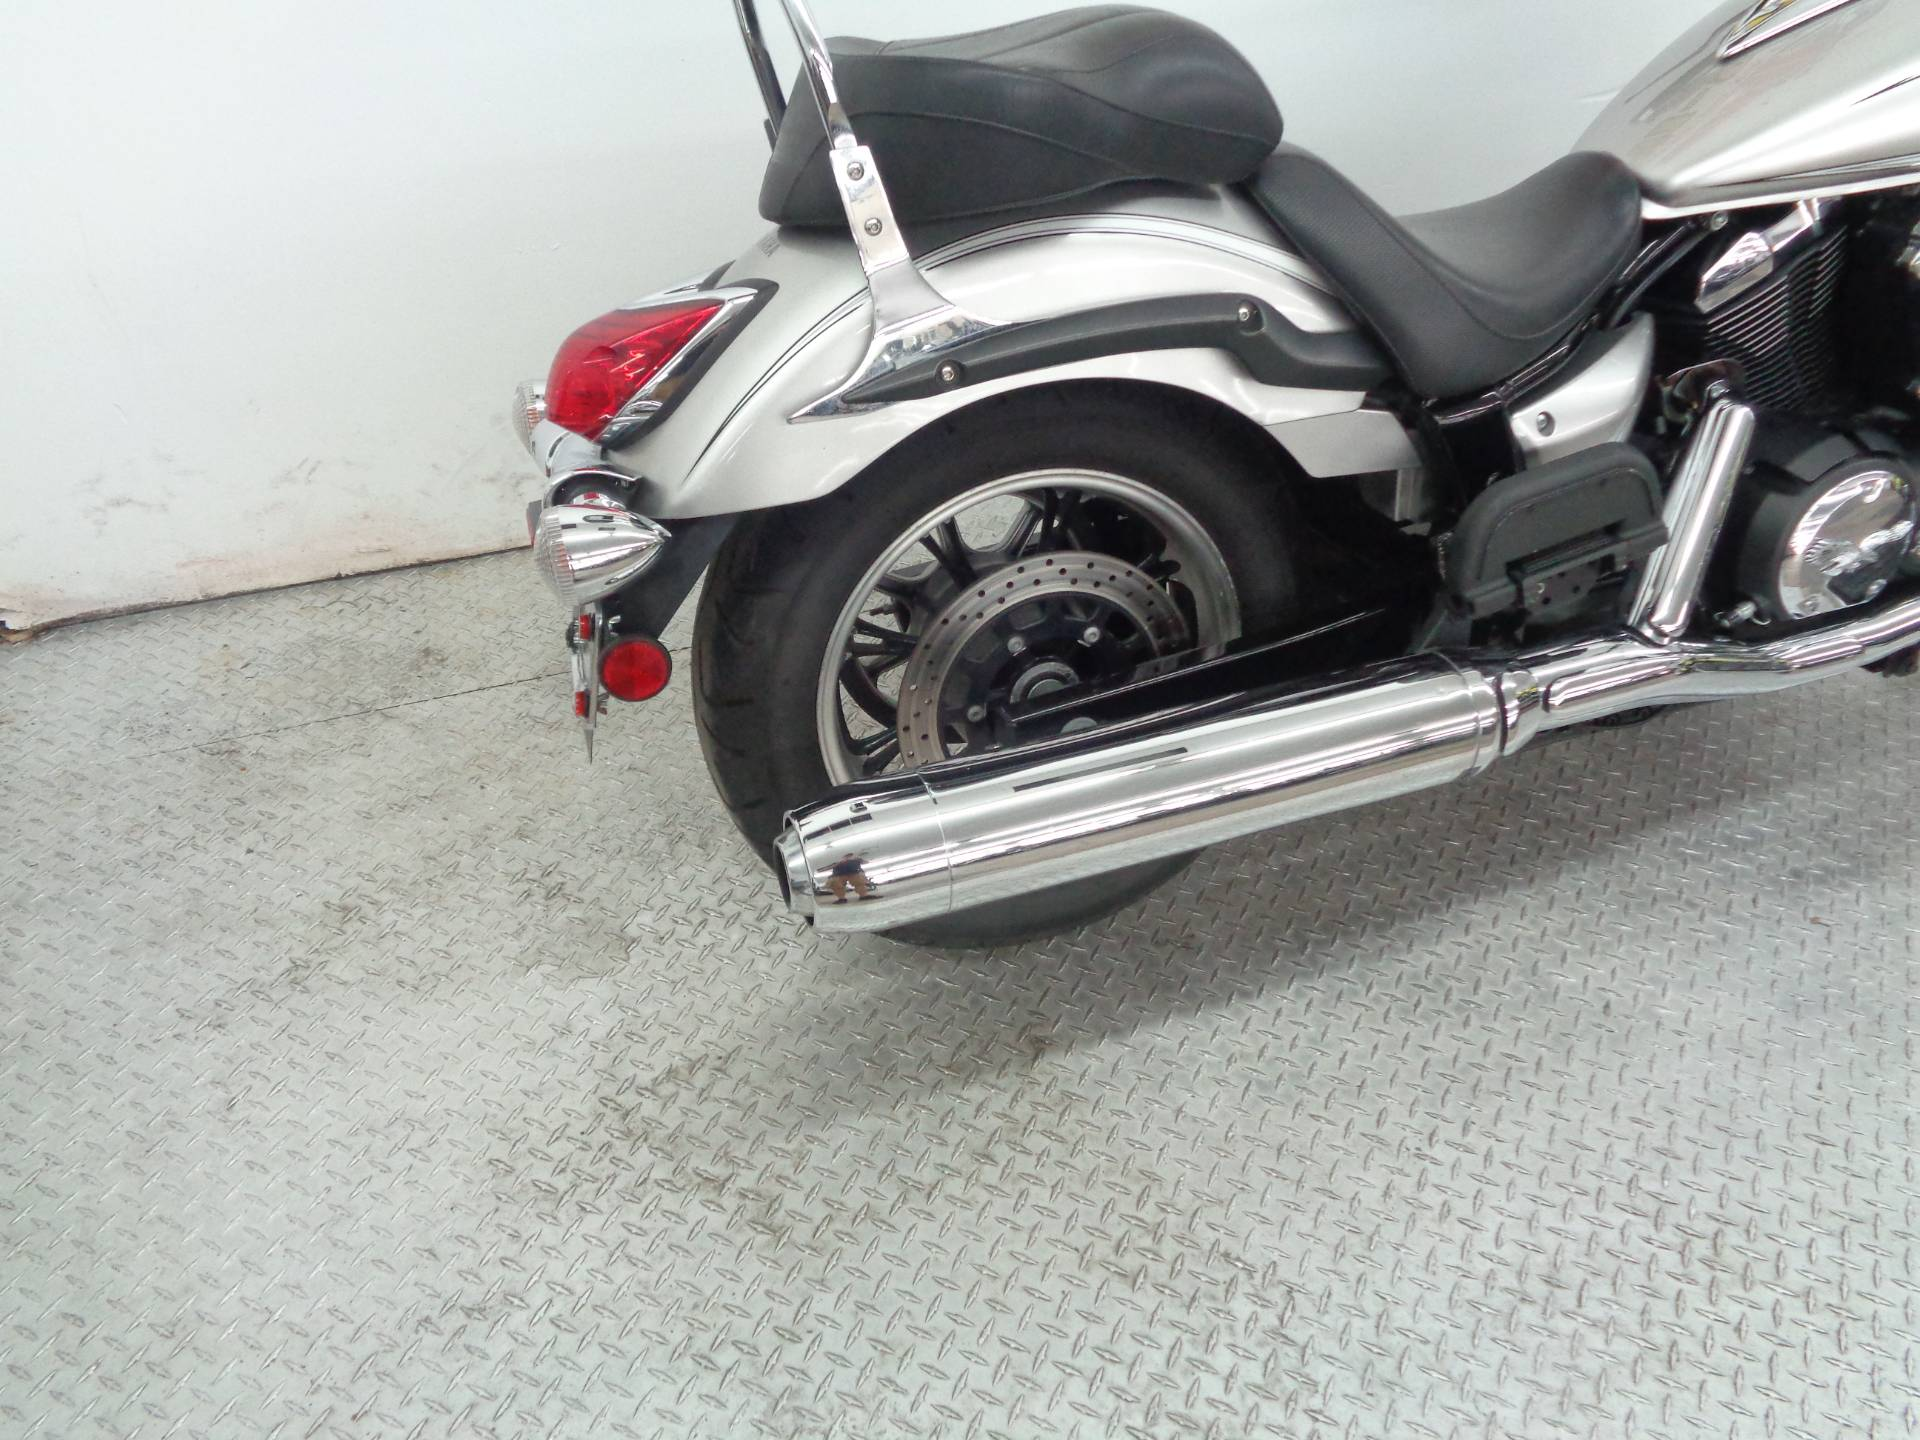 2012 Yamaha V Star 950 in Tulsa, Oklahoma - Photo 8